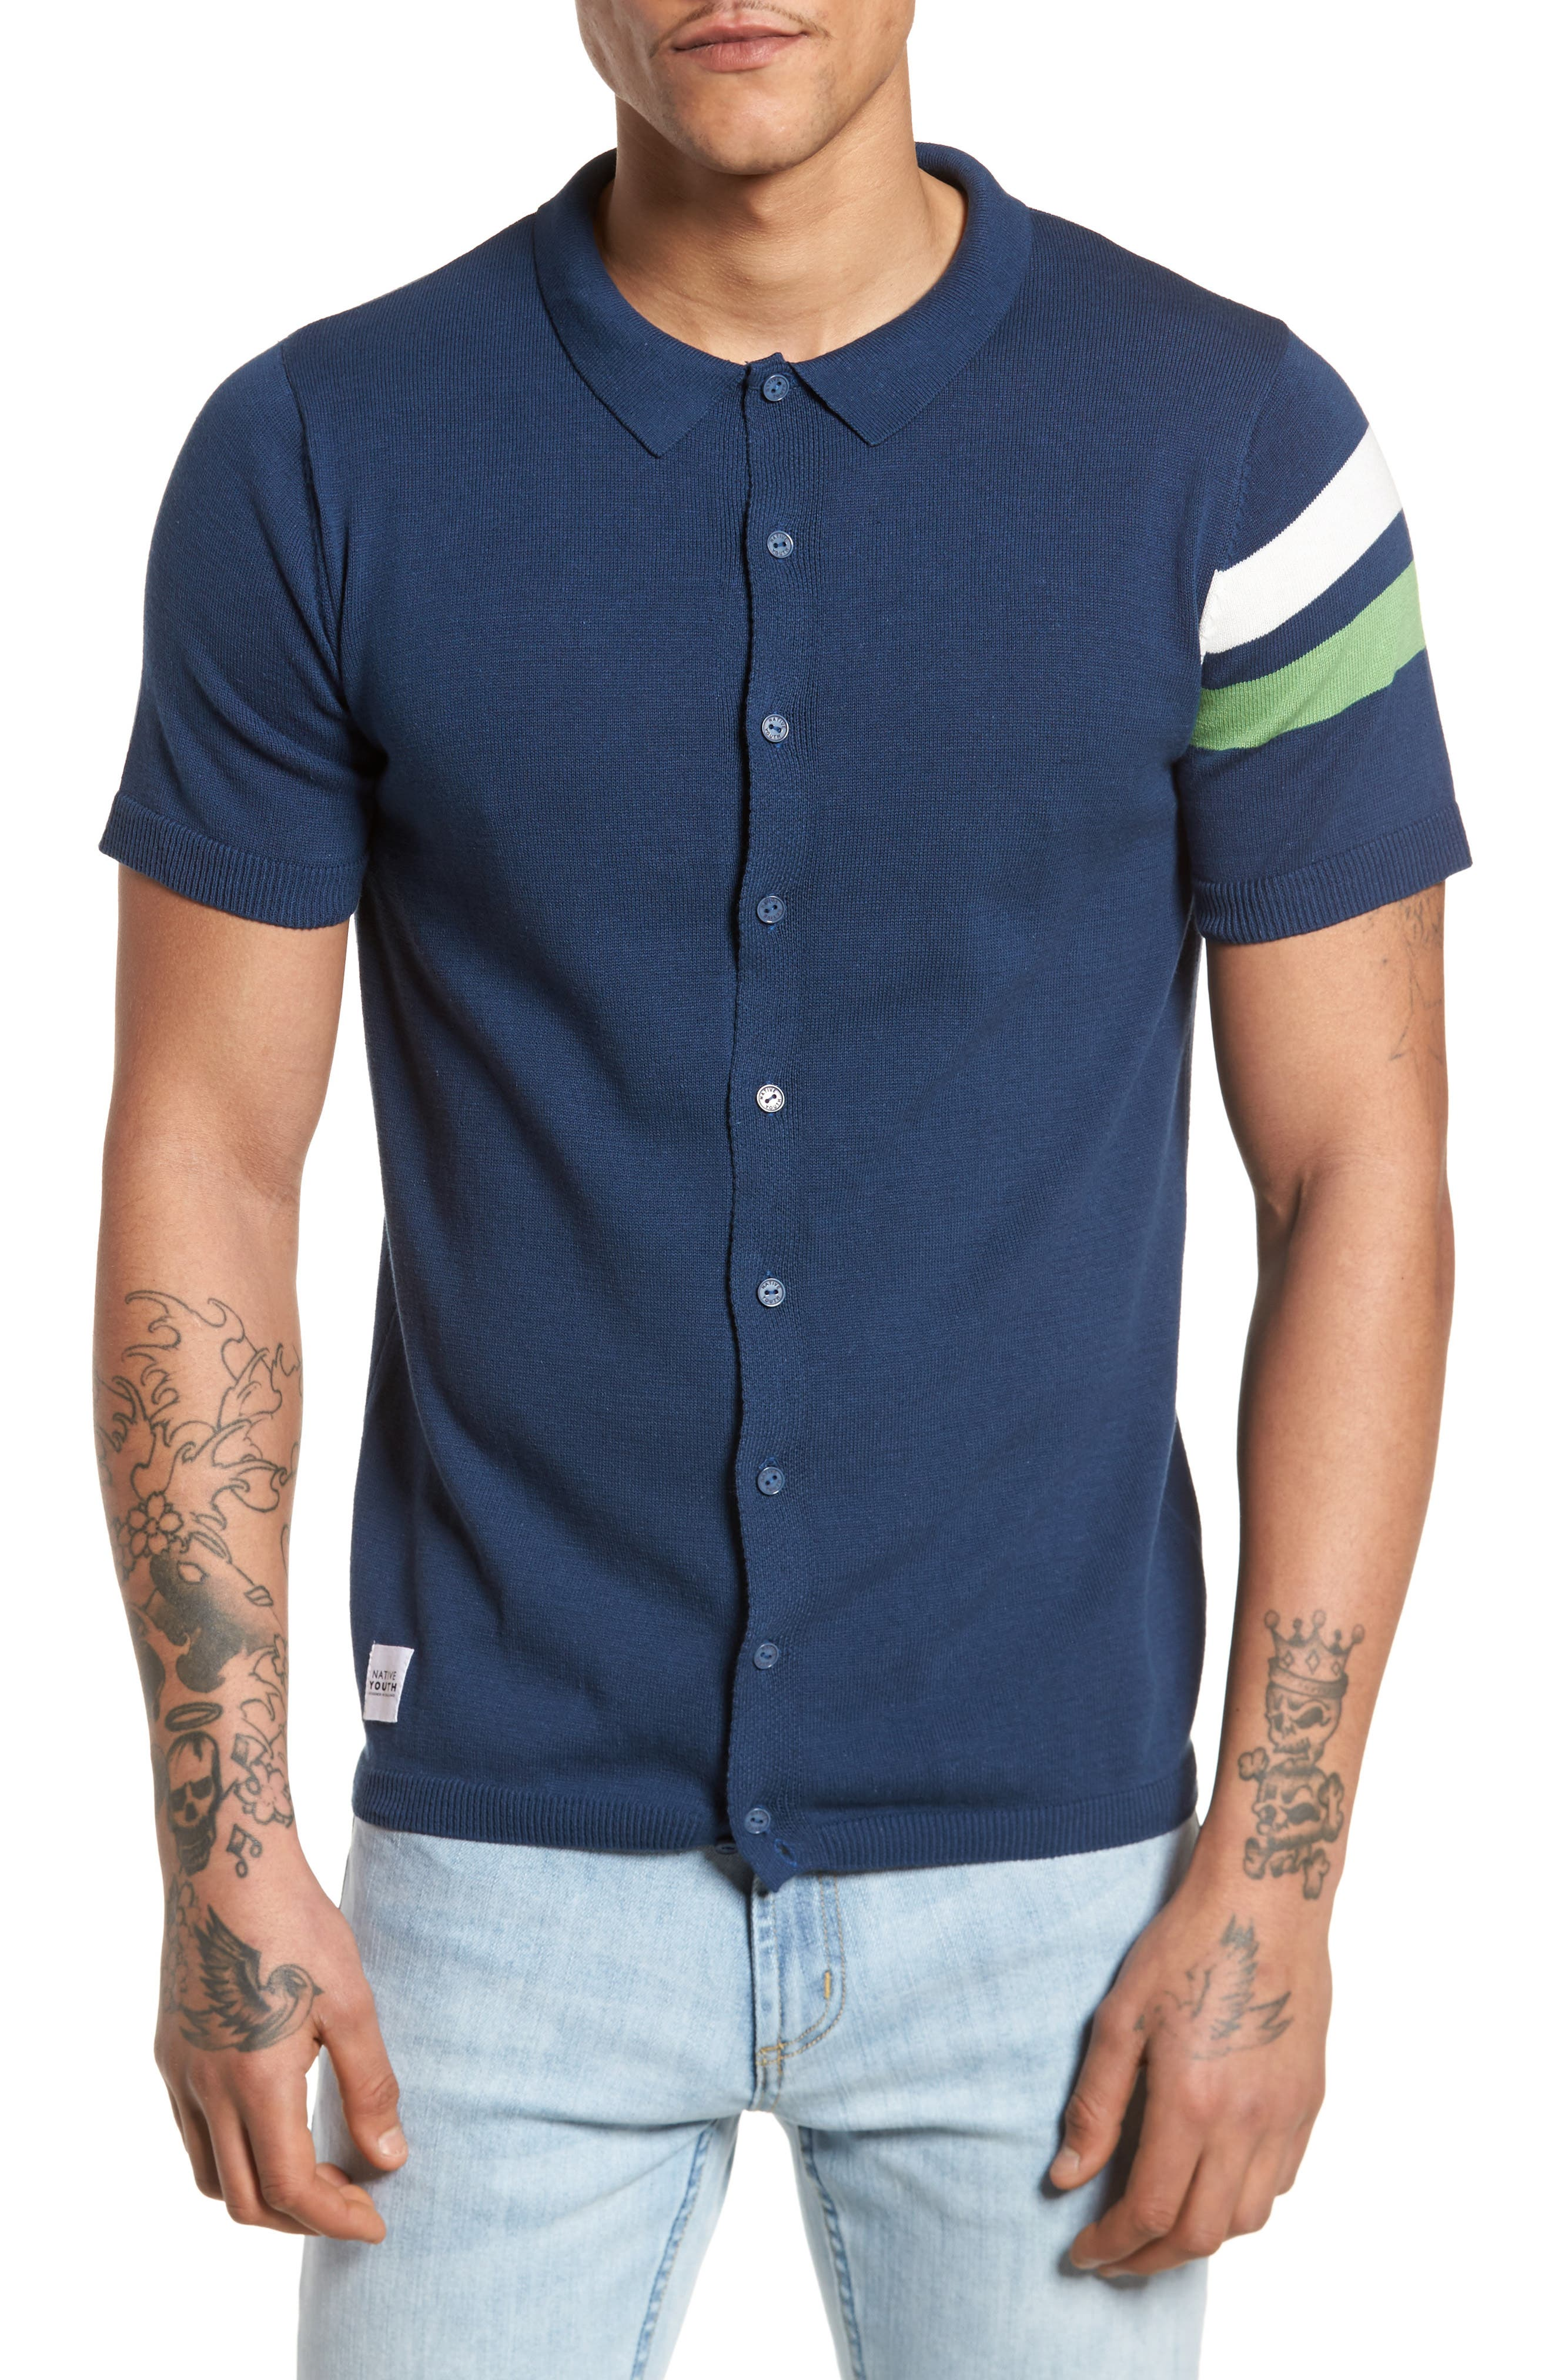 Abyss Knit Shirt,                         Main,                         color, Navy